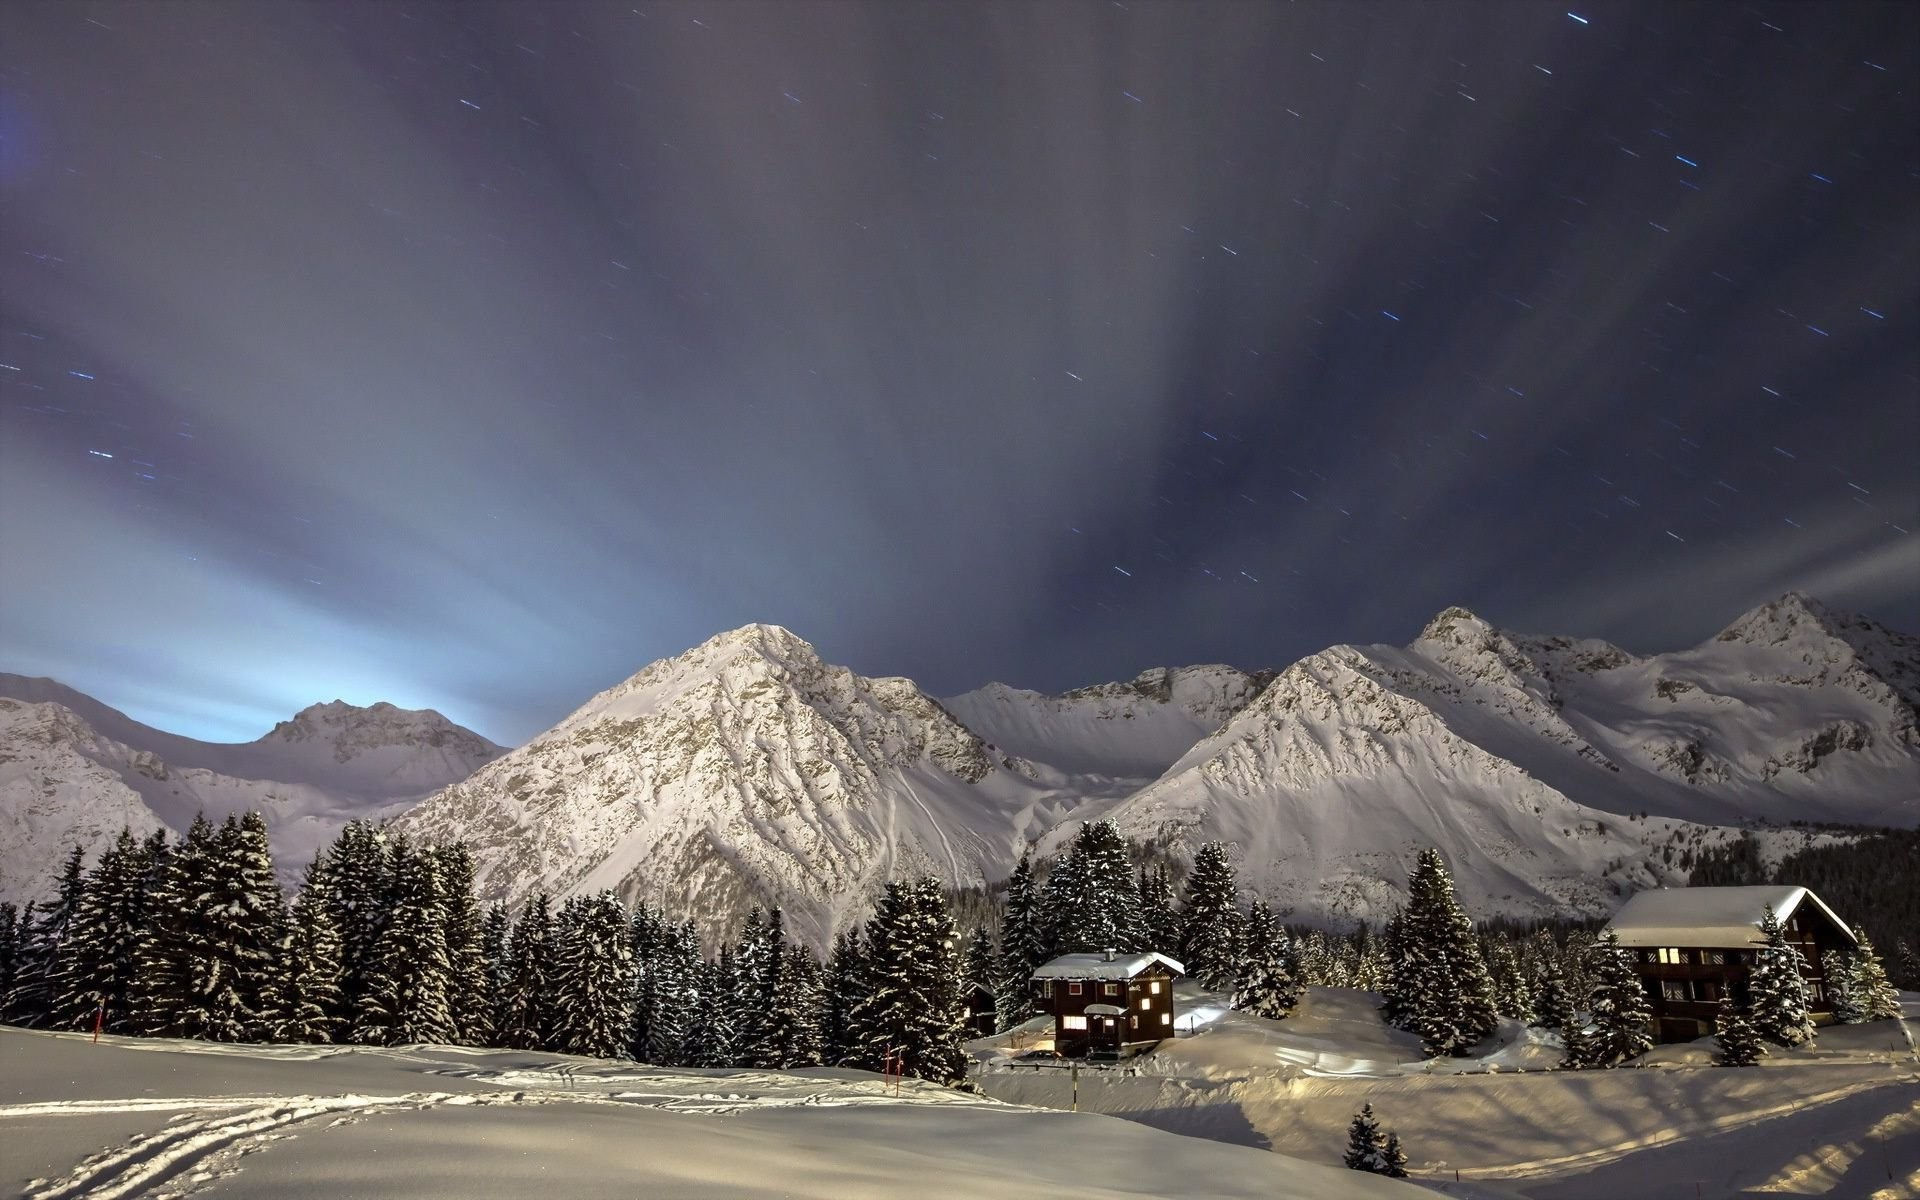 Winter Night Sky Wallpaper 64 Images